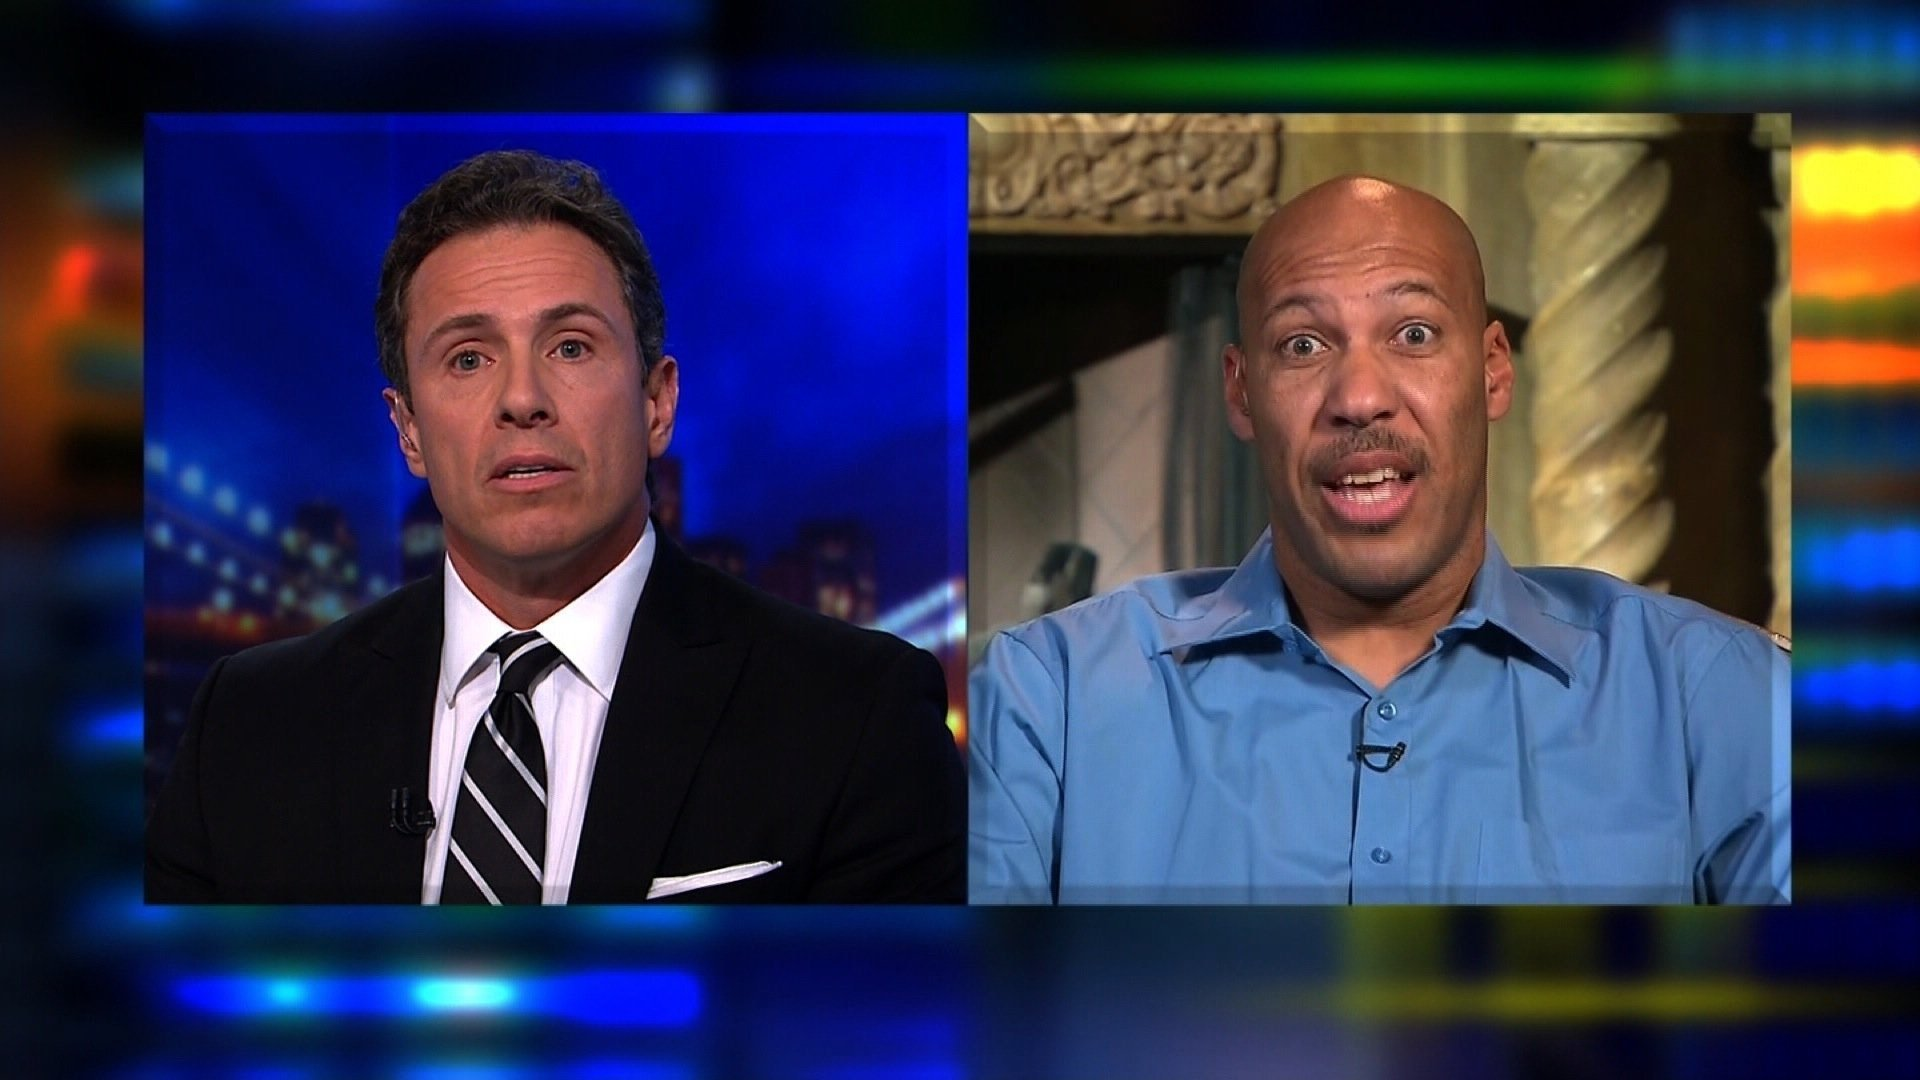 Lavar Ball goes off about Trump